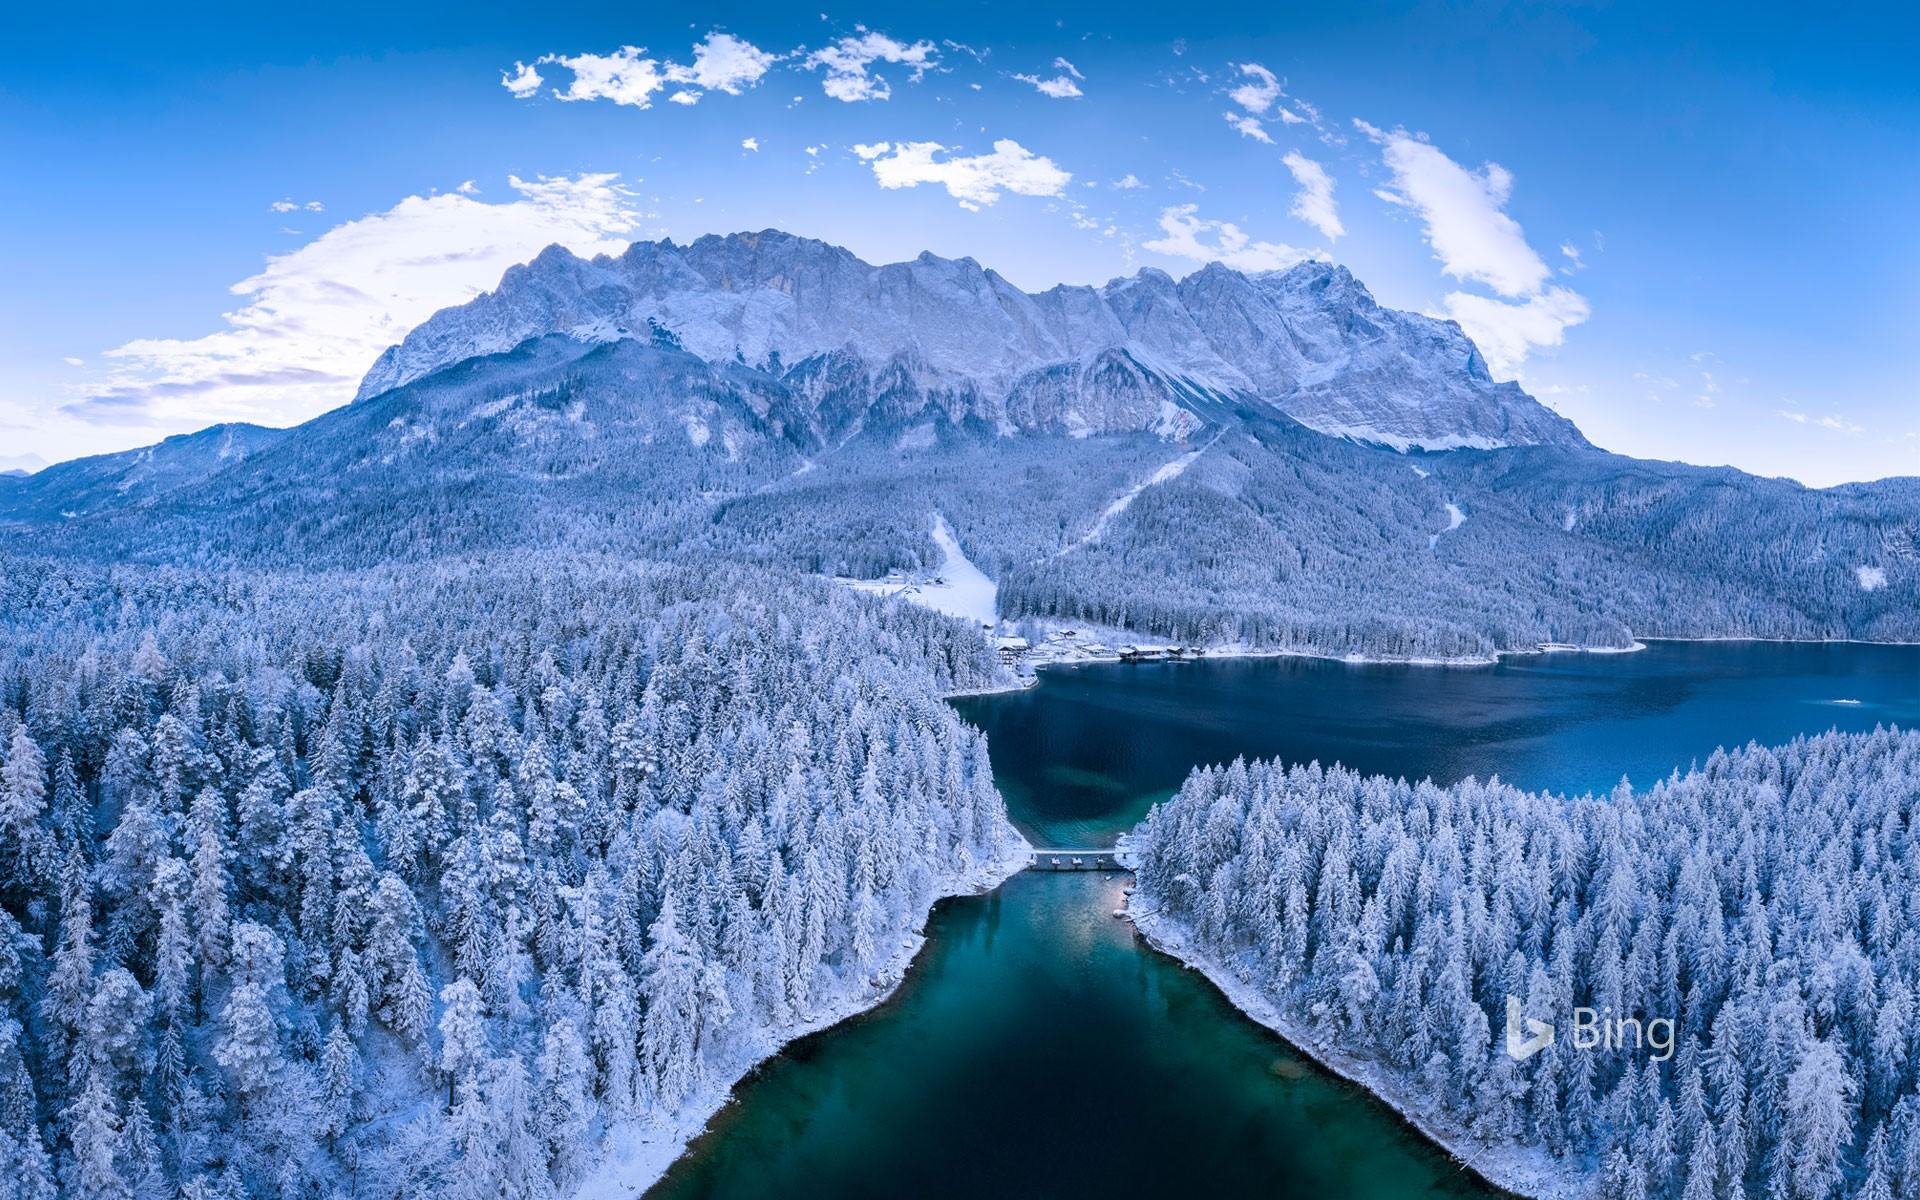 Eibsee, a lake at the base of Zugspitze, Bavaria, Germany